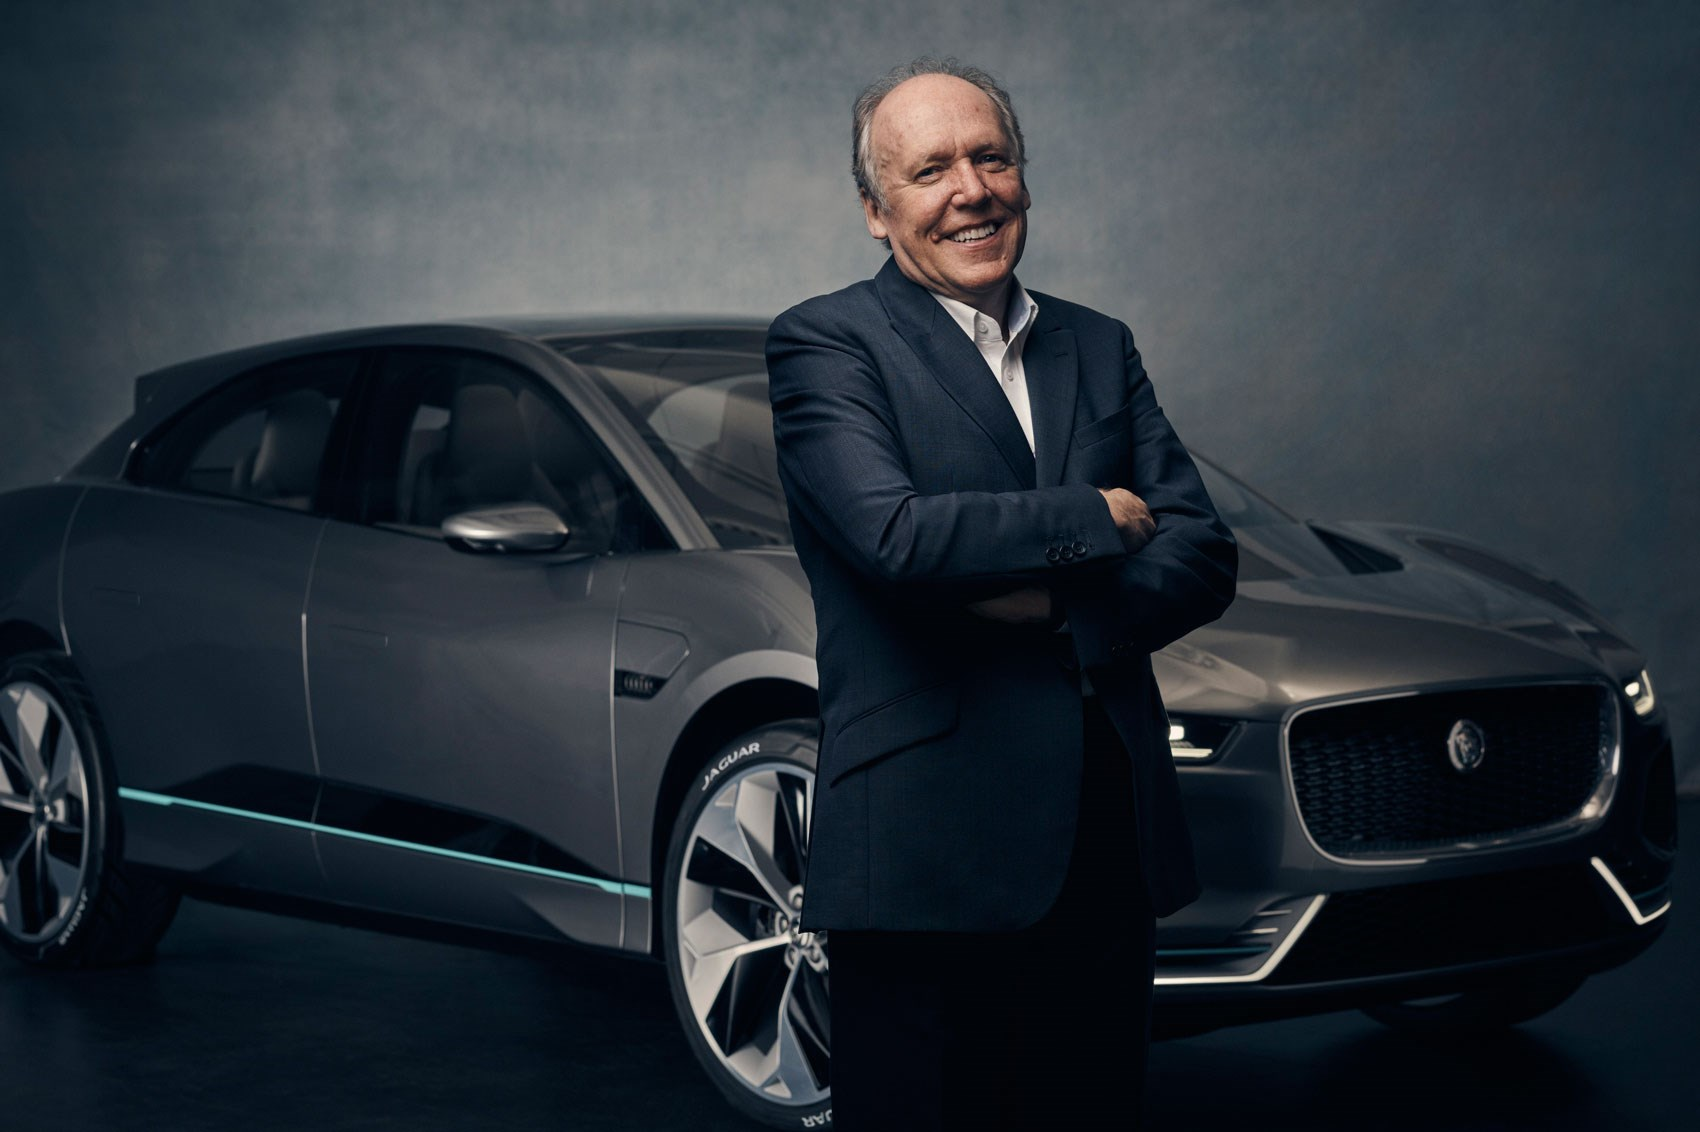 Sports Cars Evs And The V8 In Twilight Ian Callum On Jaguar S Future